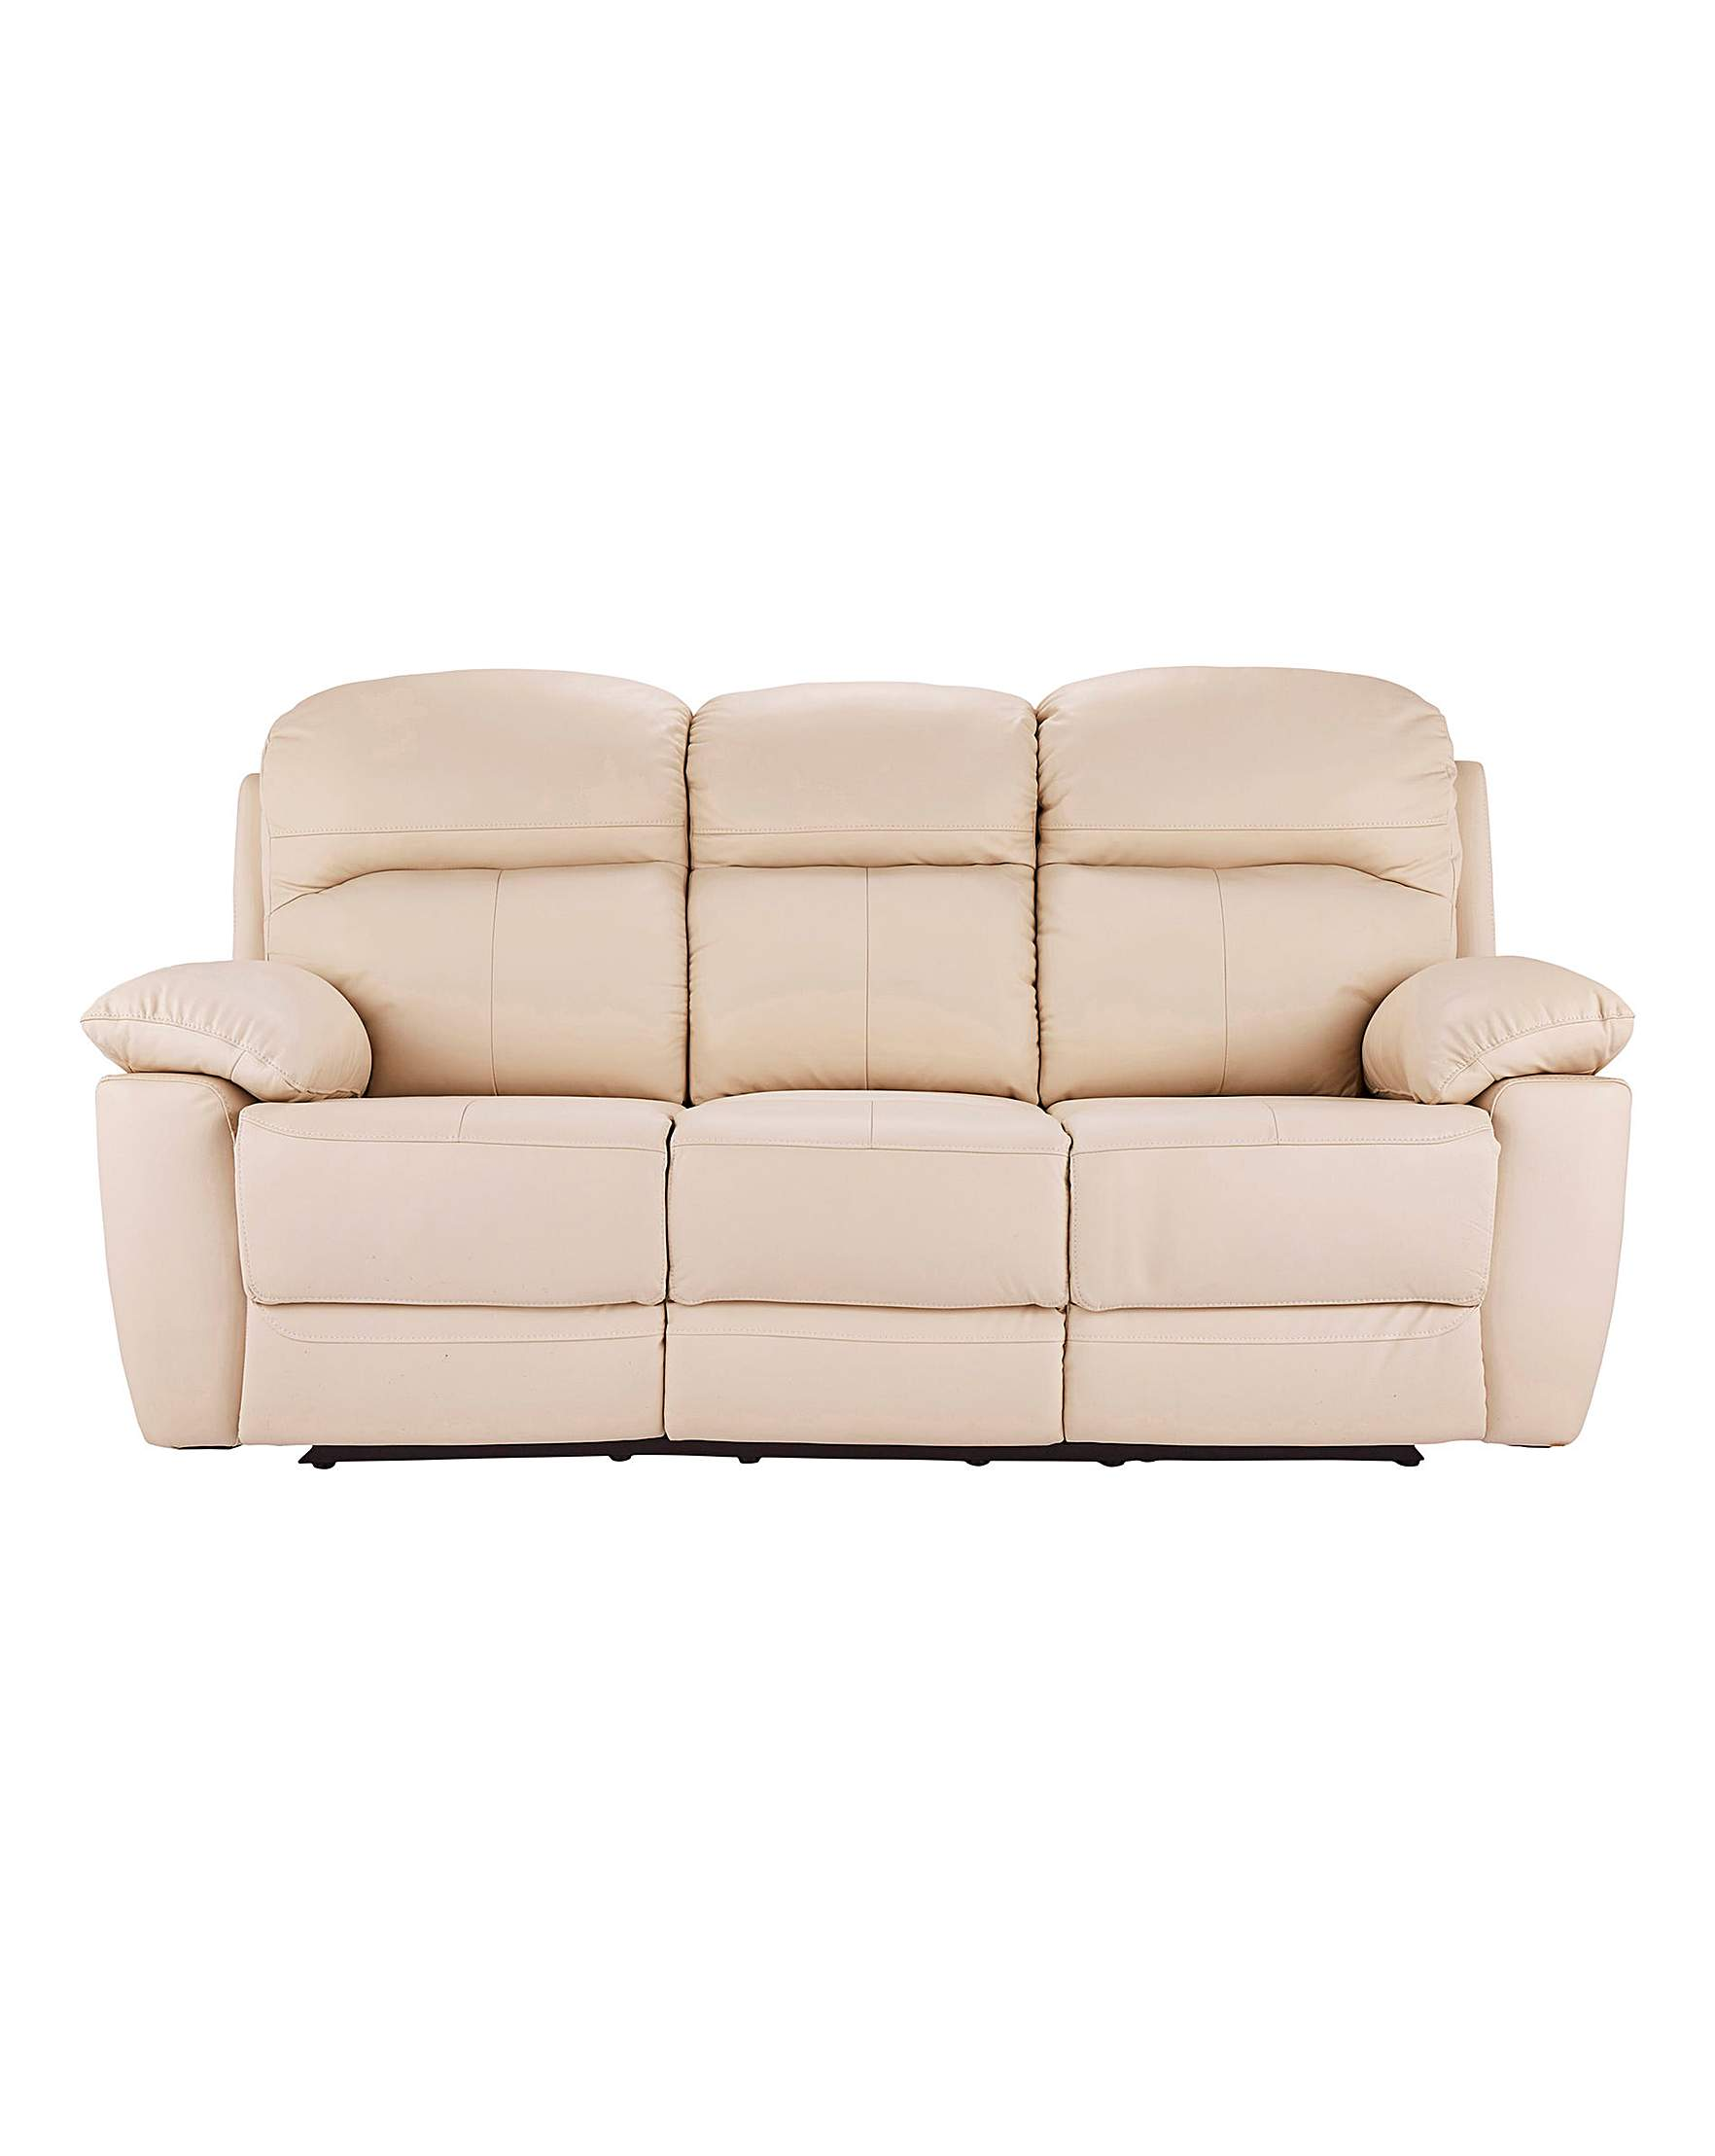 Roma Leather Recliner Three Seater Sofa Fashion World